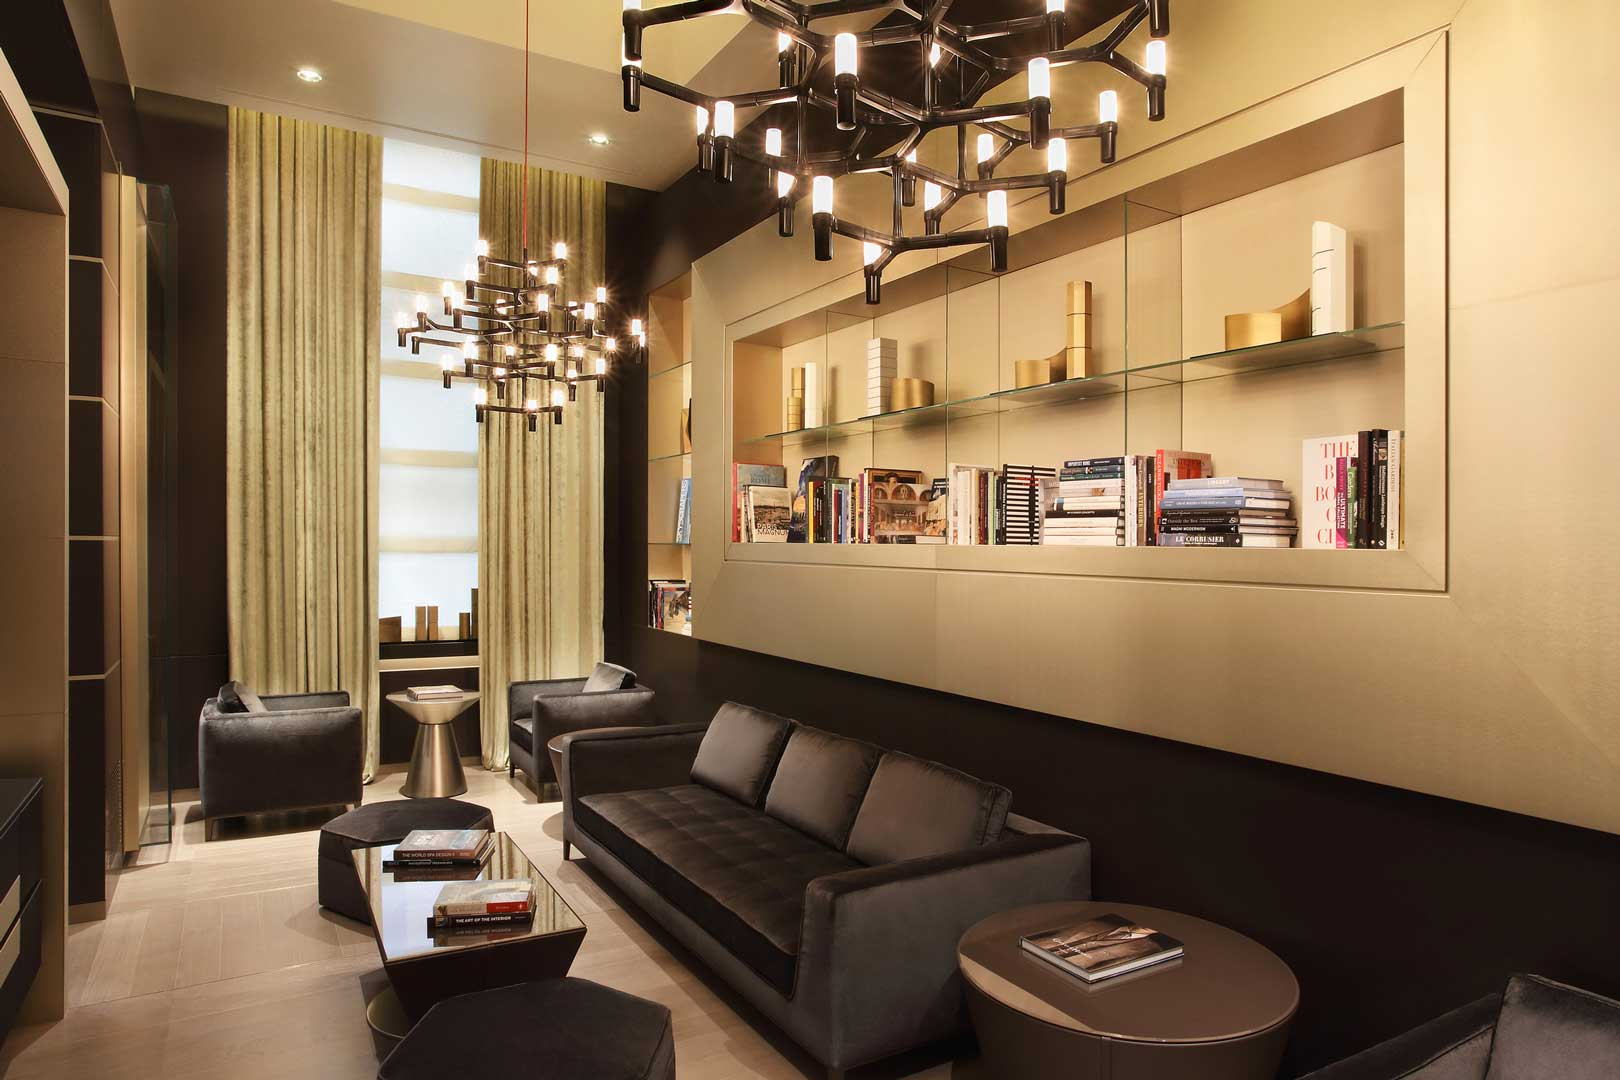 Excelsior Hotel Gallia | Library